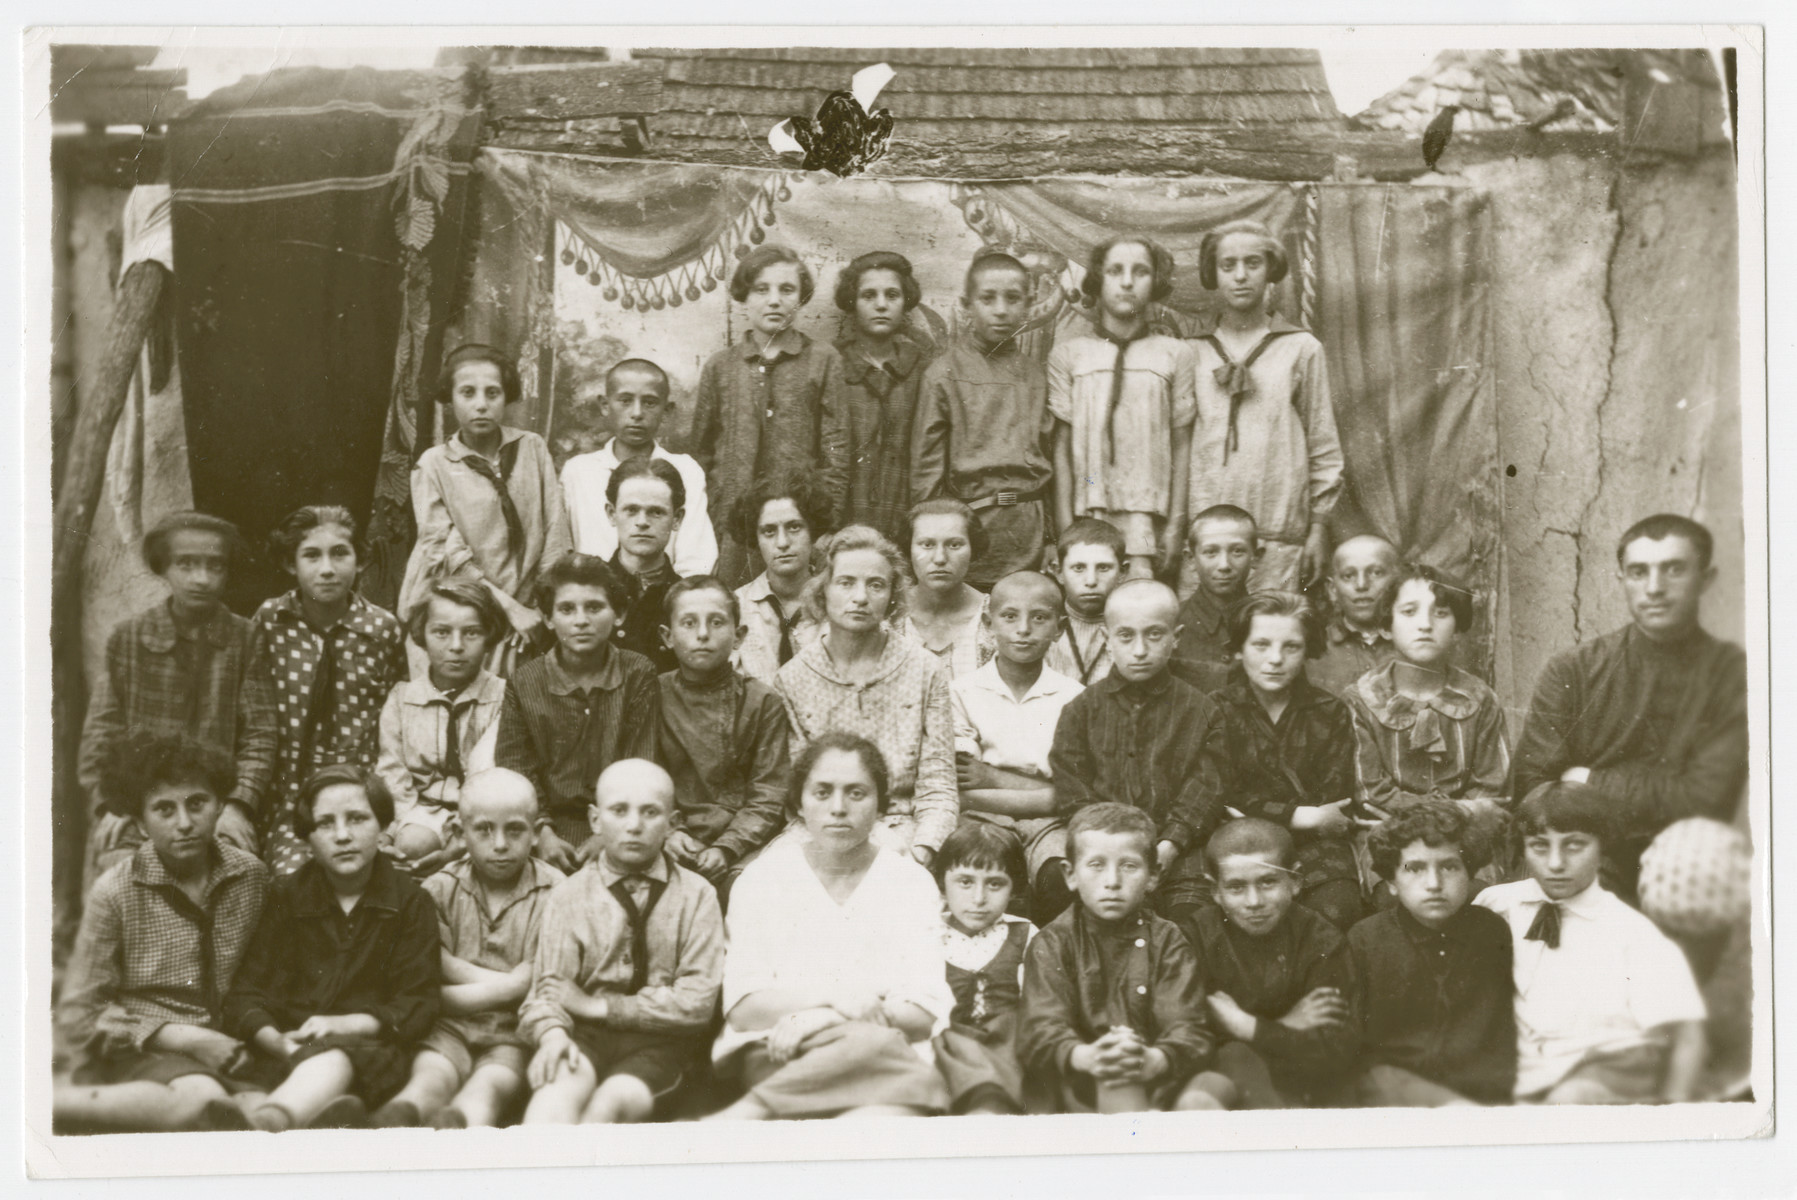 Group portrait of Jewish youth from Orinin, USSR.